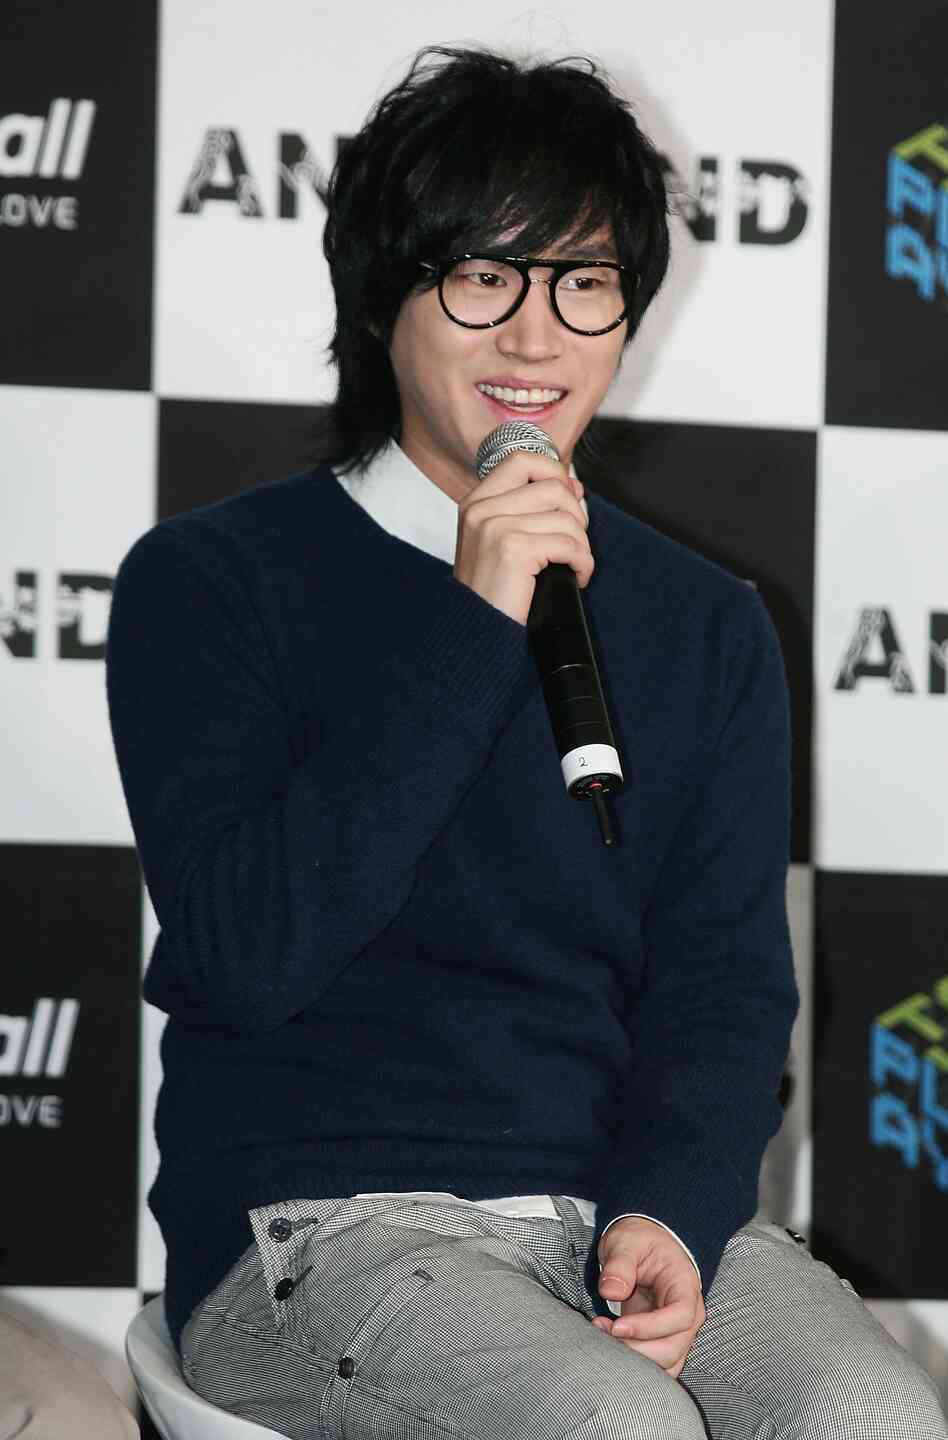 Tablo, also known as Dan Lee, really did earn both a bachelor's and a master's degree from Stanford — in less than four years.